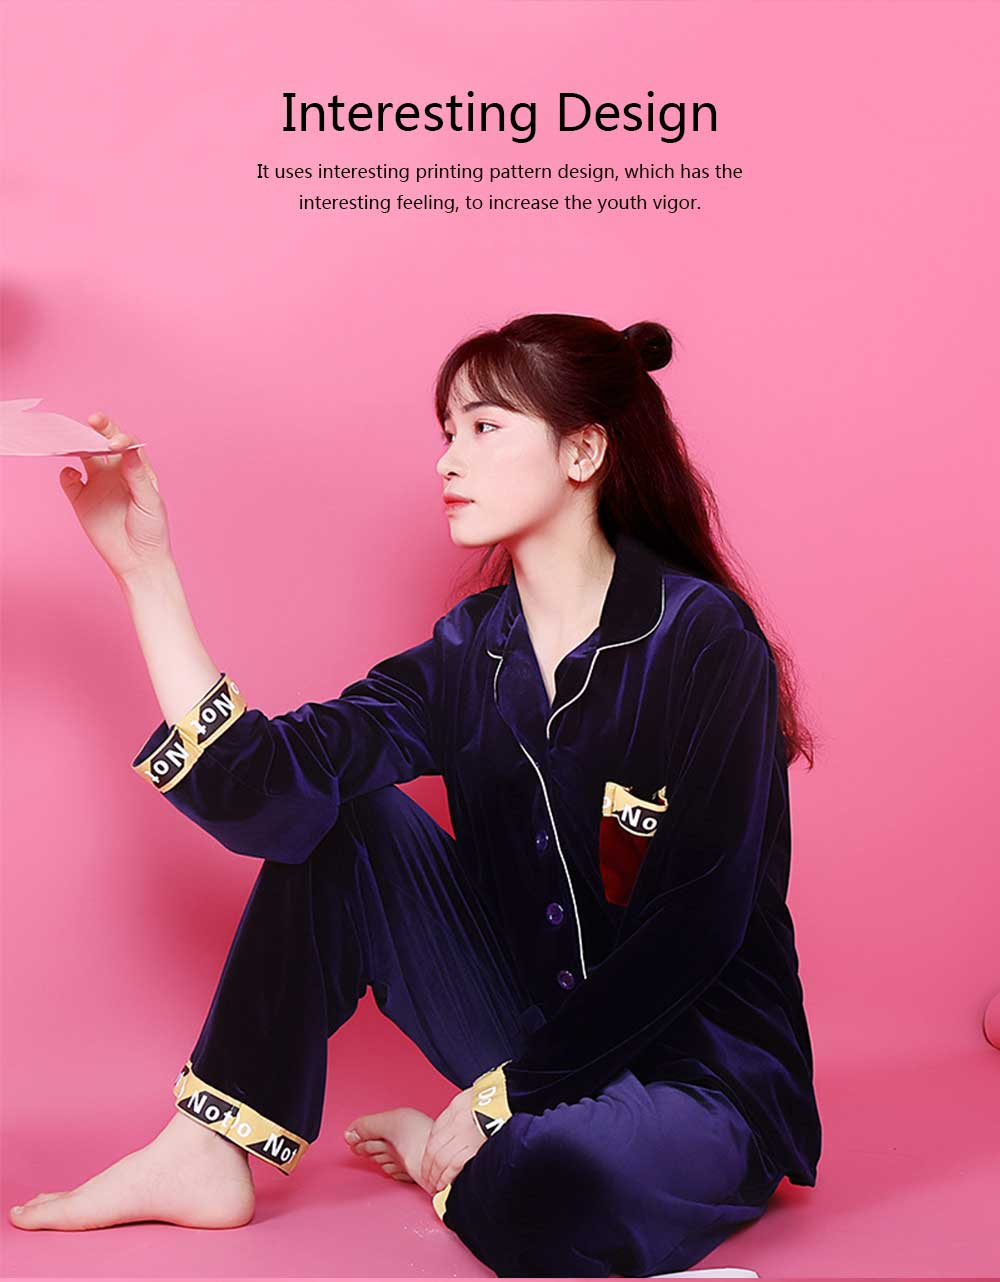 Women's Classic Lapel Long-sleeve Tracksuit, Soft Velvet Fabric Pajamas, with Interesting Printing Pattern 4